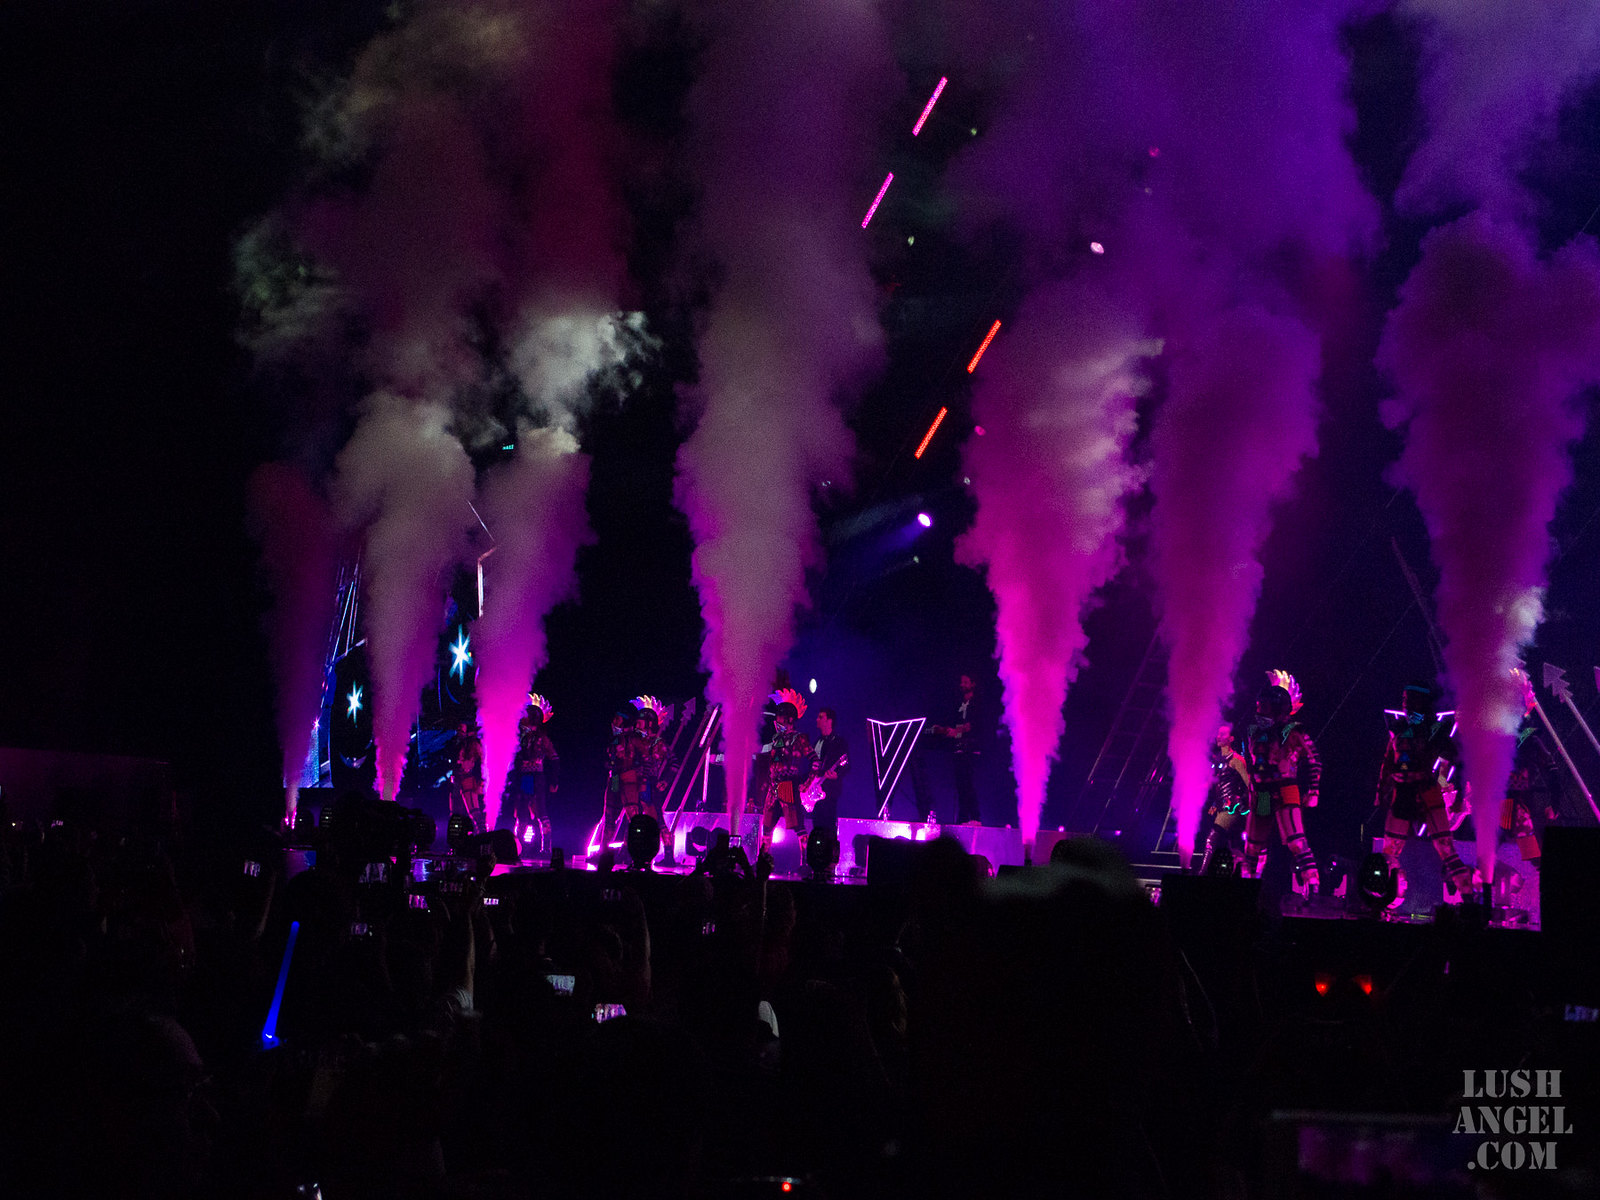 katy-perry-prismatic-world-tour-philippines-opening